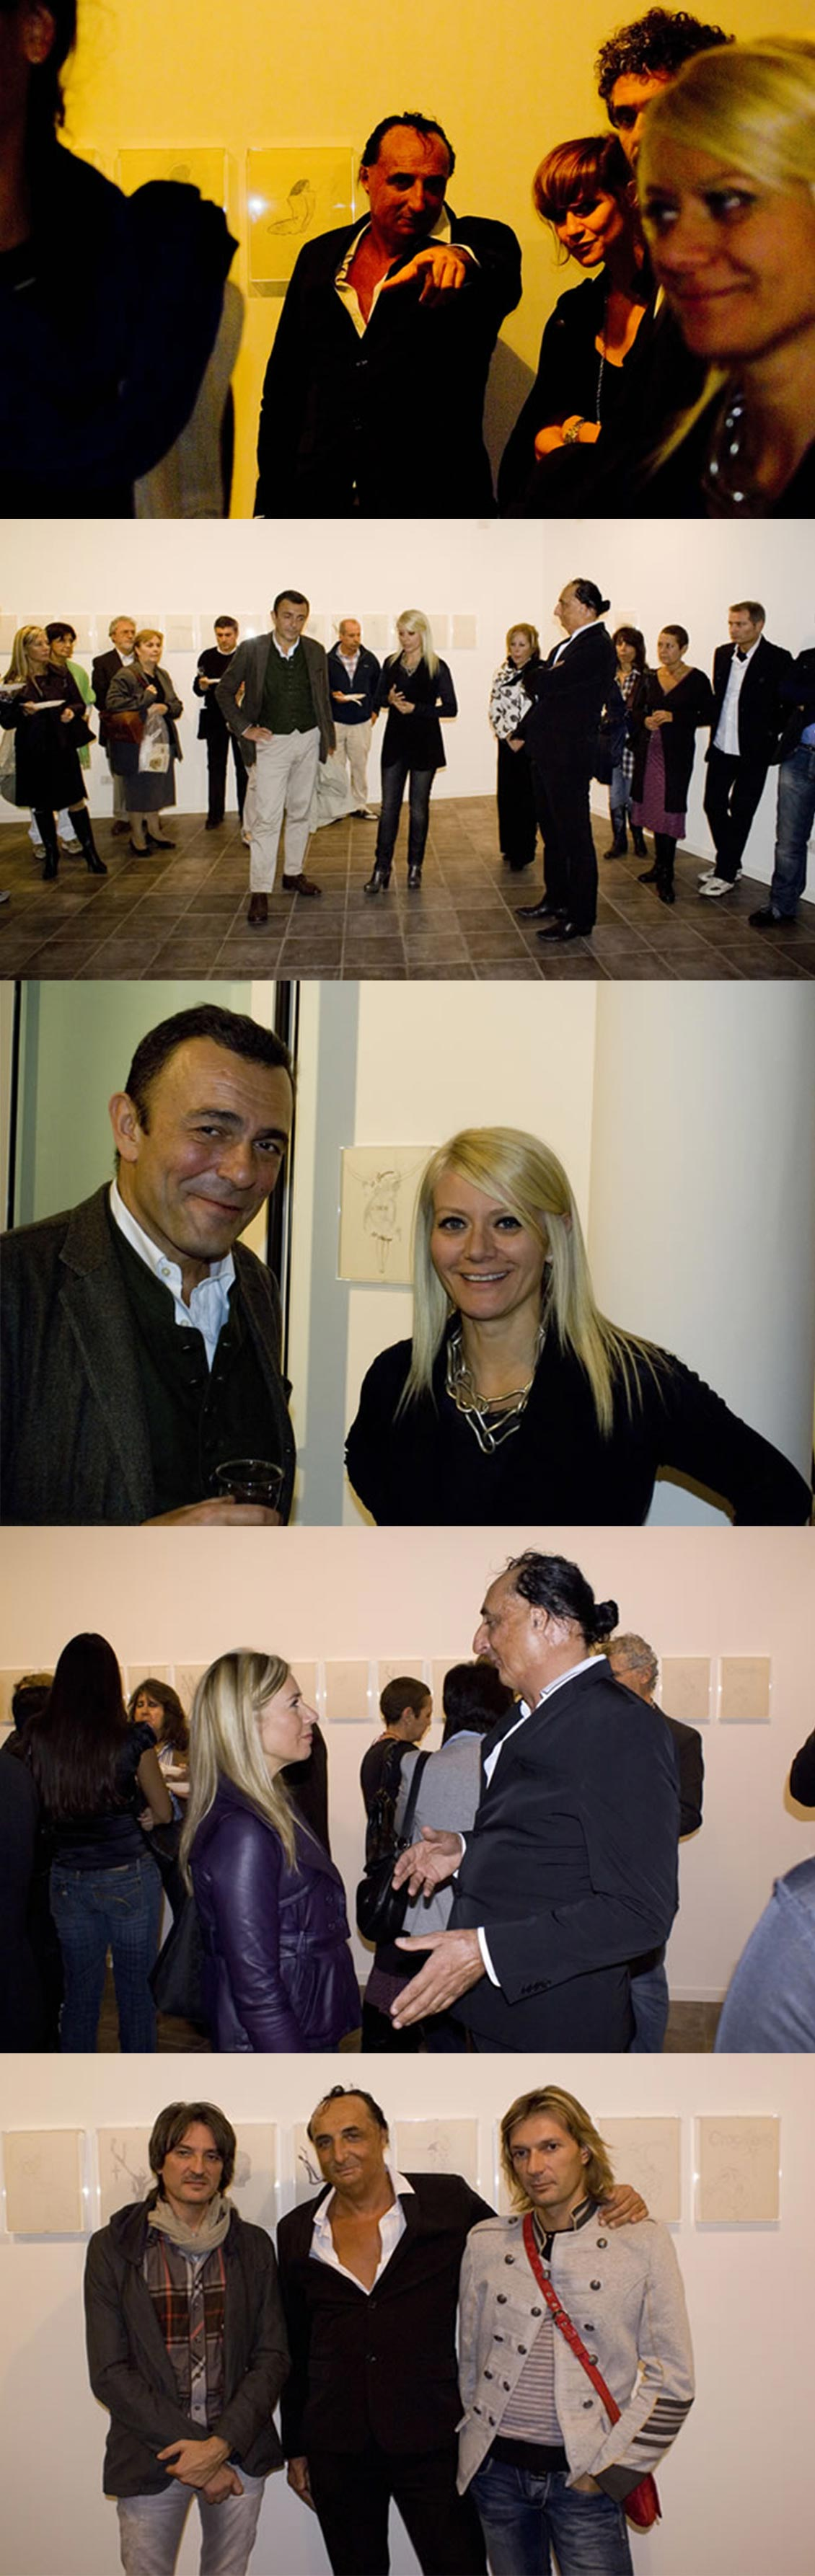 Vernissage Giovanni Manfredini alla Galleria Melesi